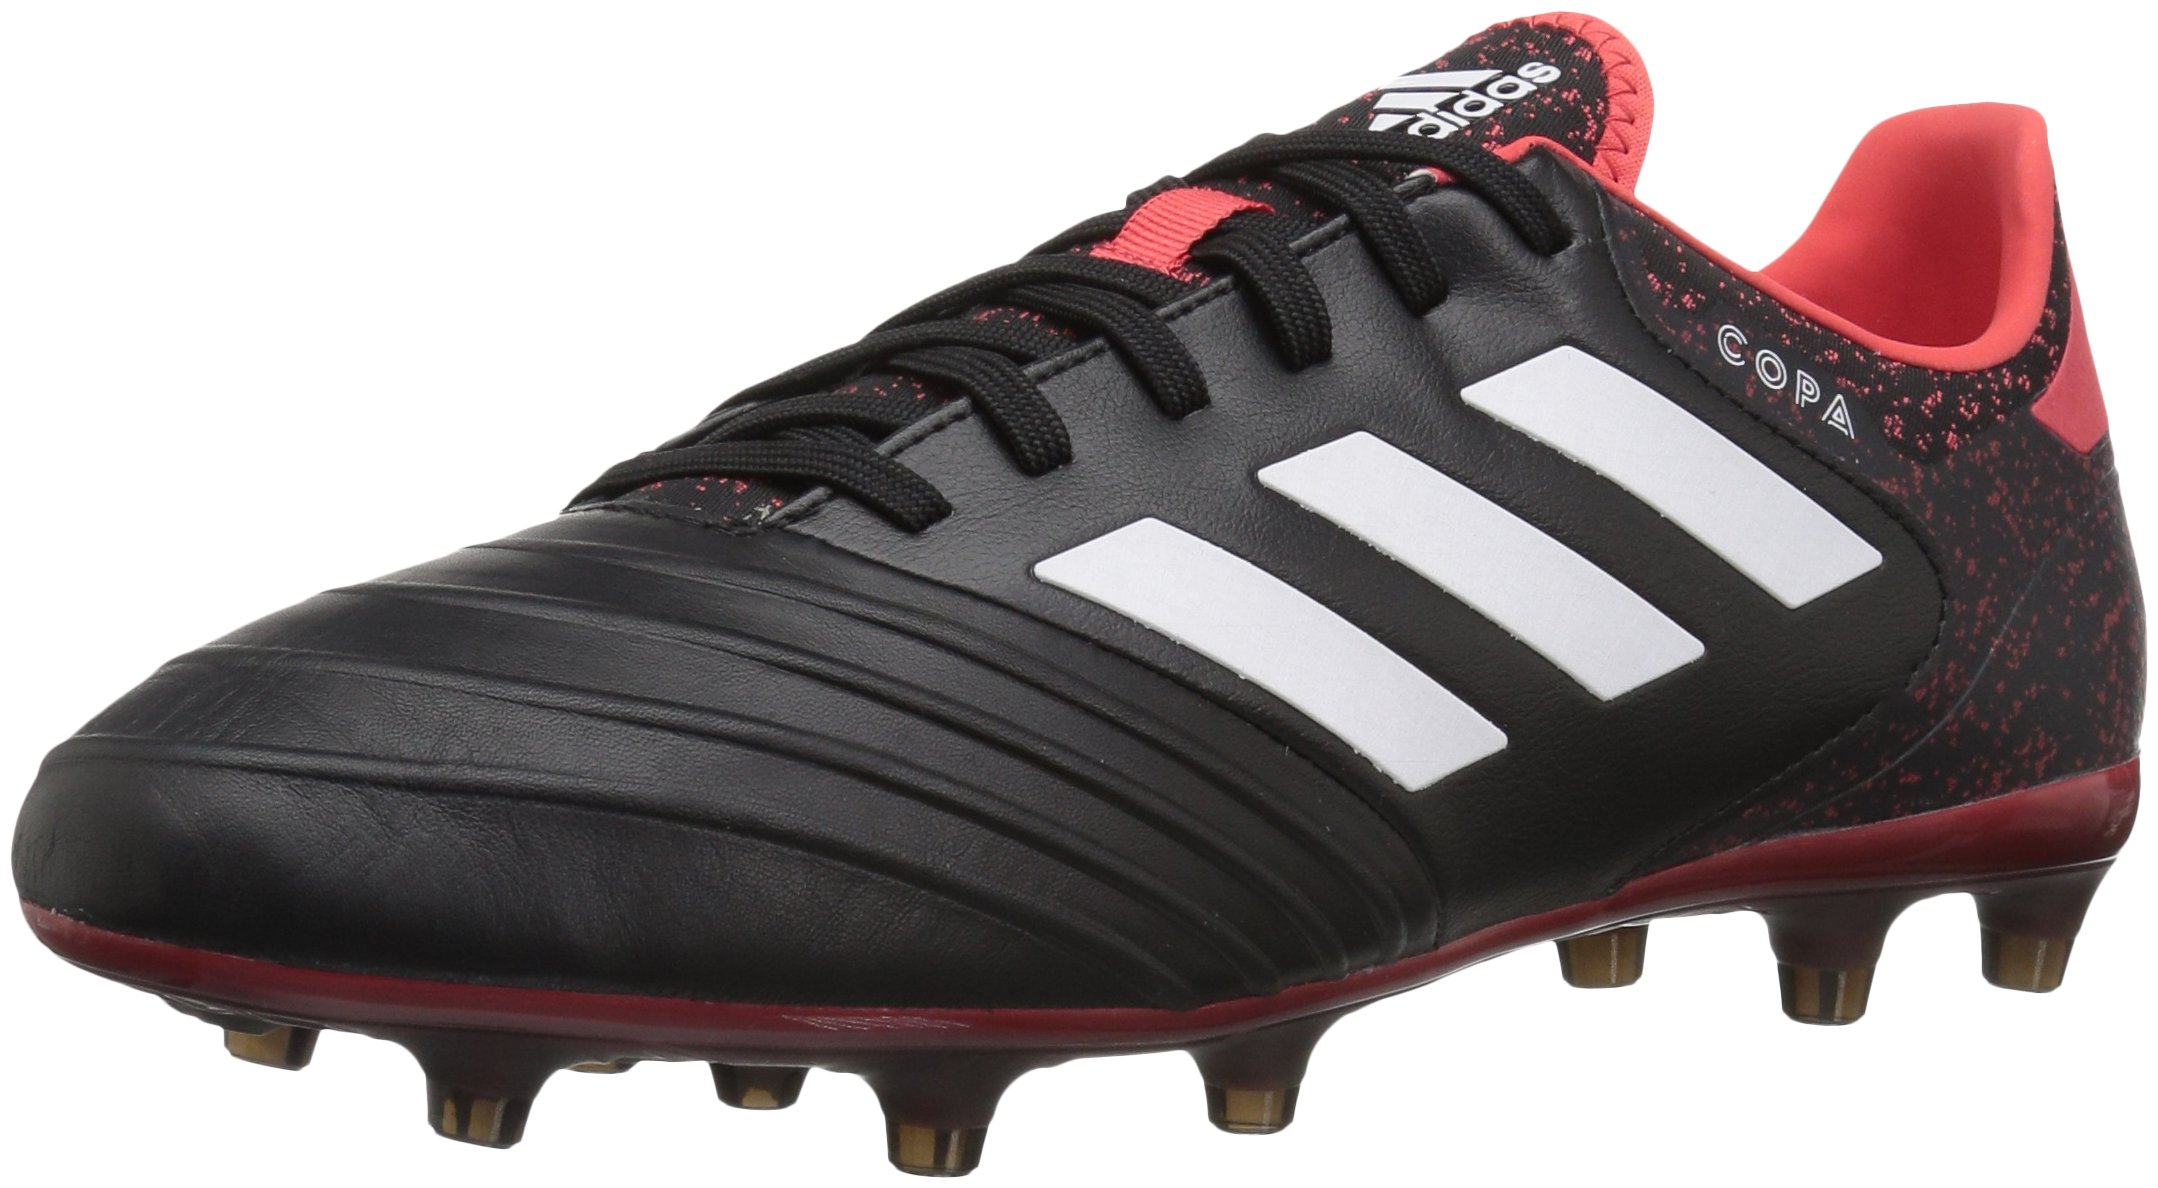 adidas Men's Copa 18.2 Firm Ground Soccer Shoe, Black/White/Real Coral, 12 M US